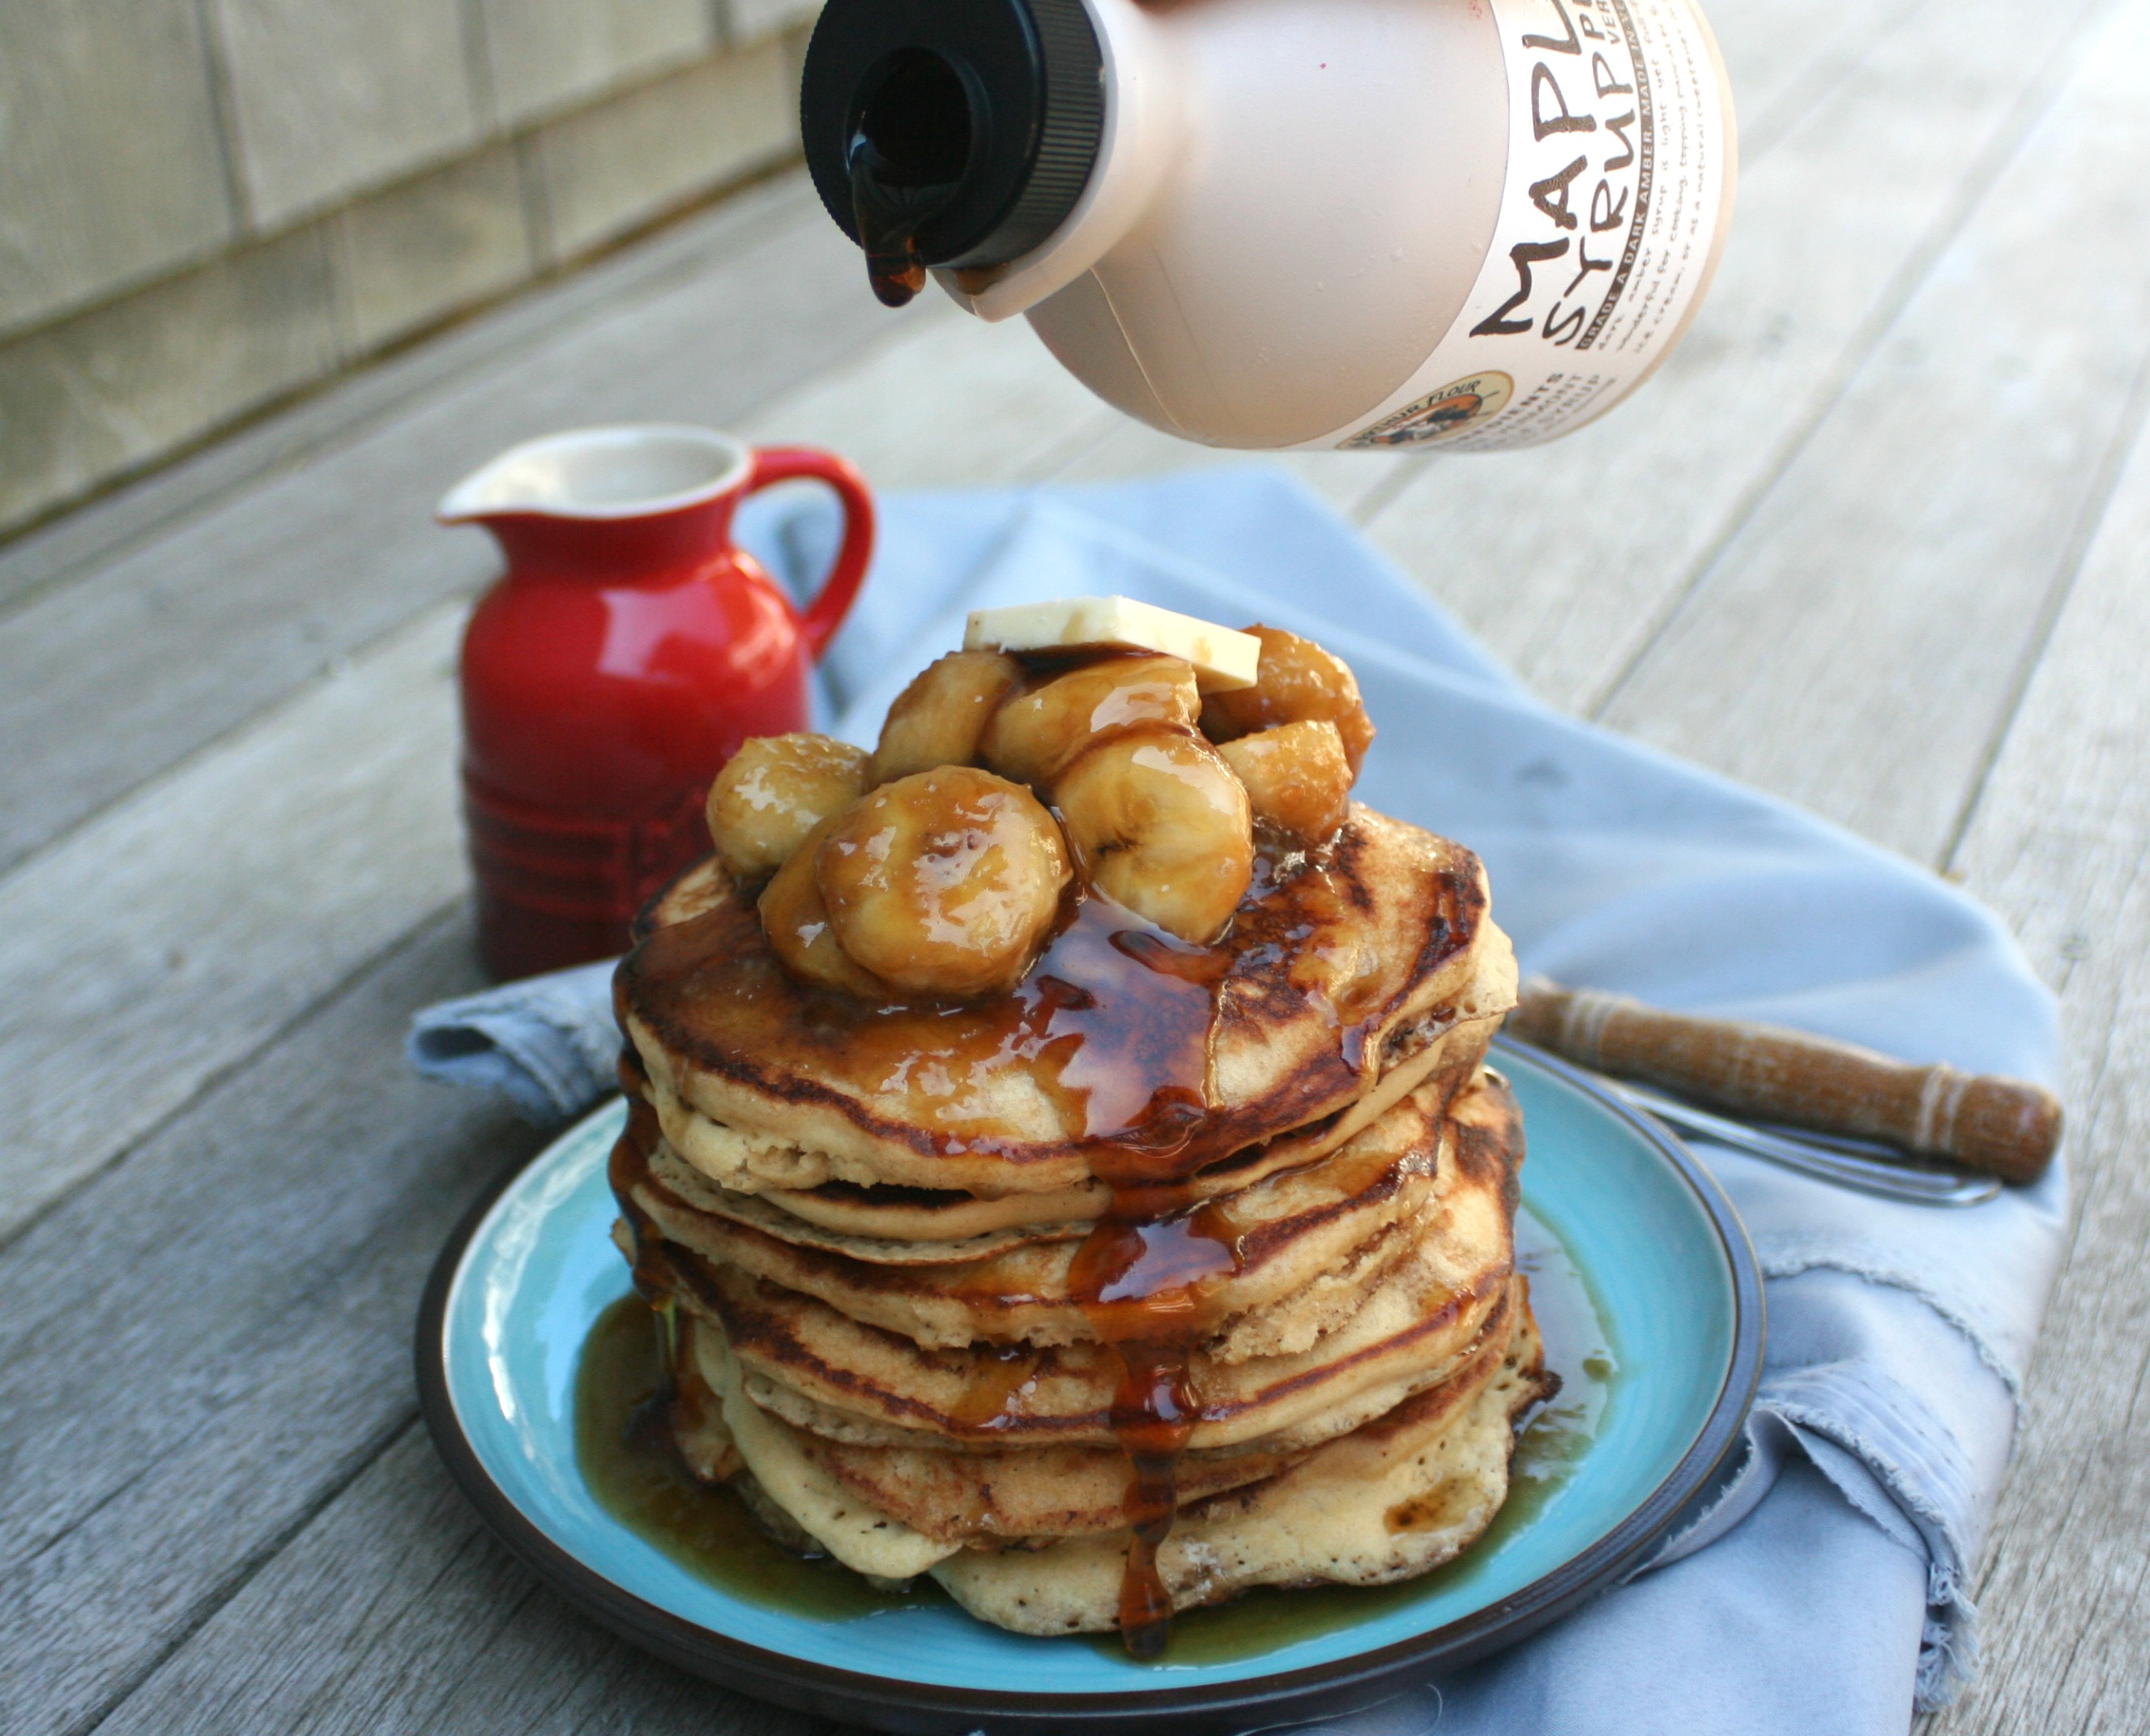 Tags: bananas foster , breakfast , pancakes , whole wheat